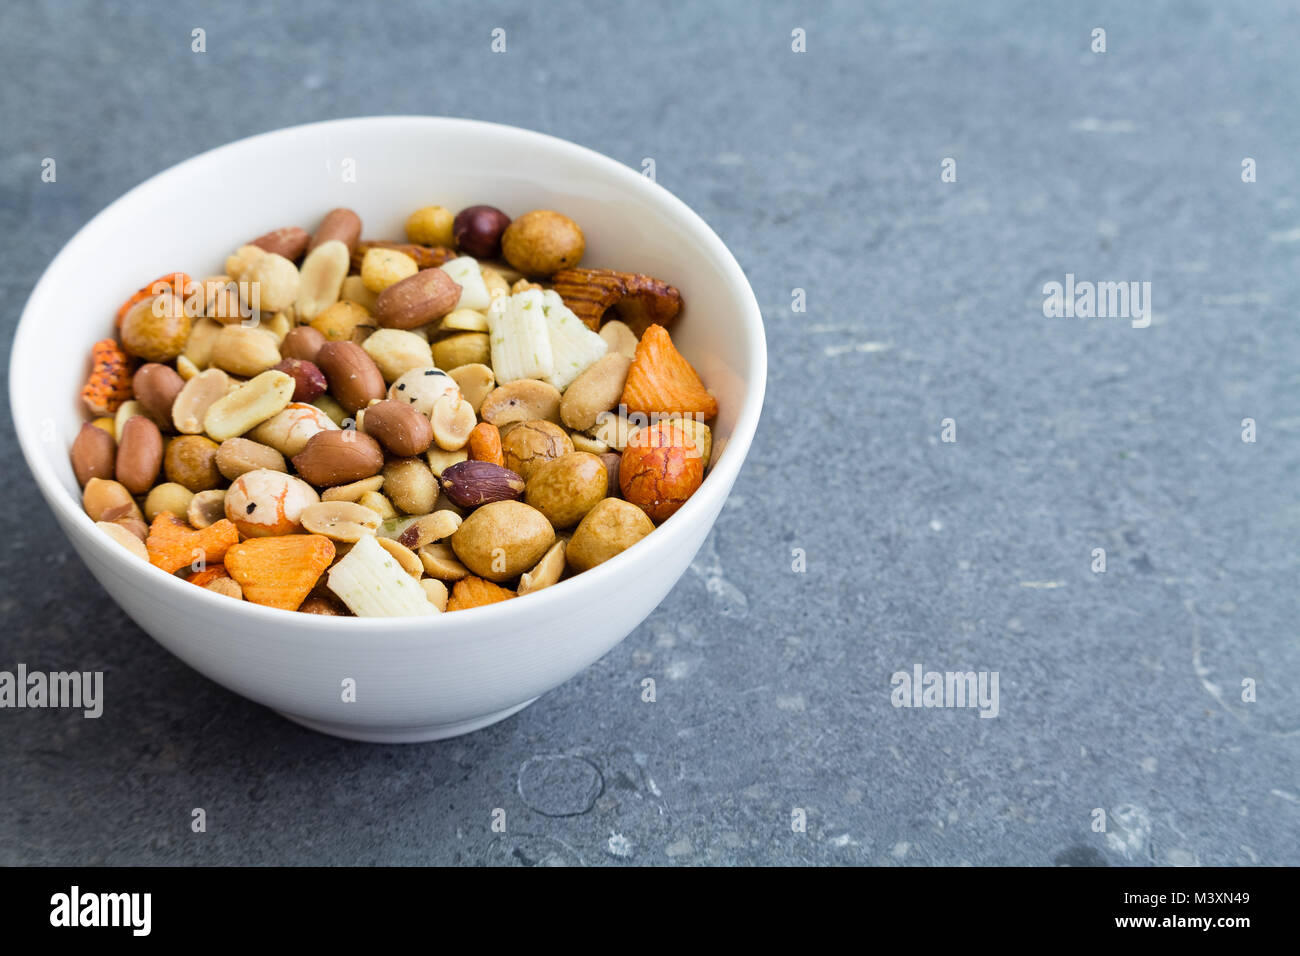 Nuts and seeds in white bowl on dark grunge texture background - Stock Image